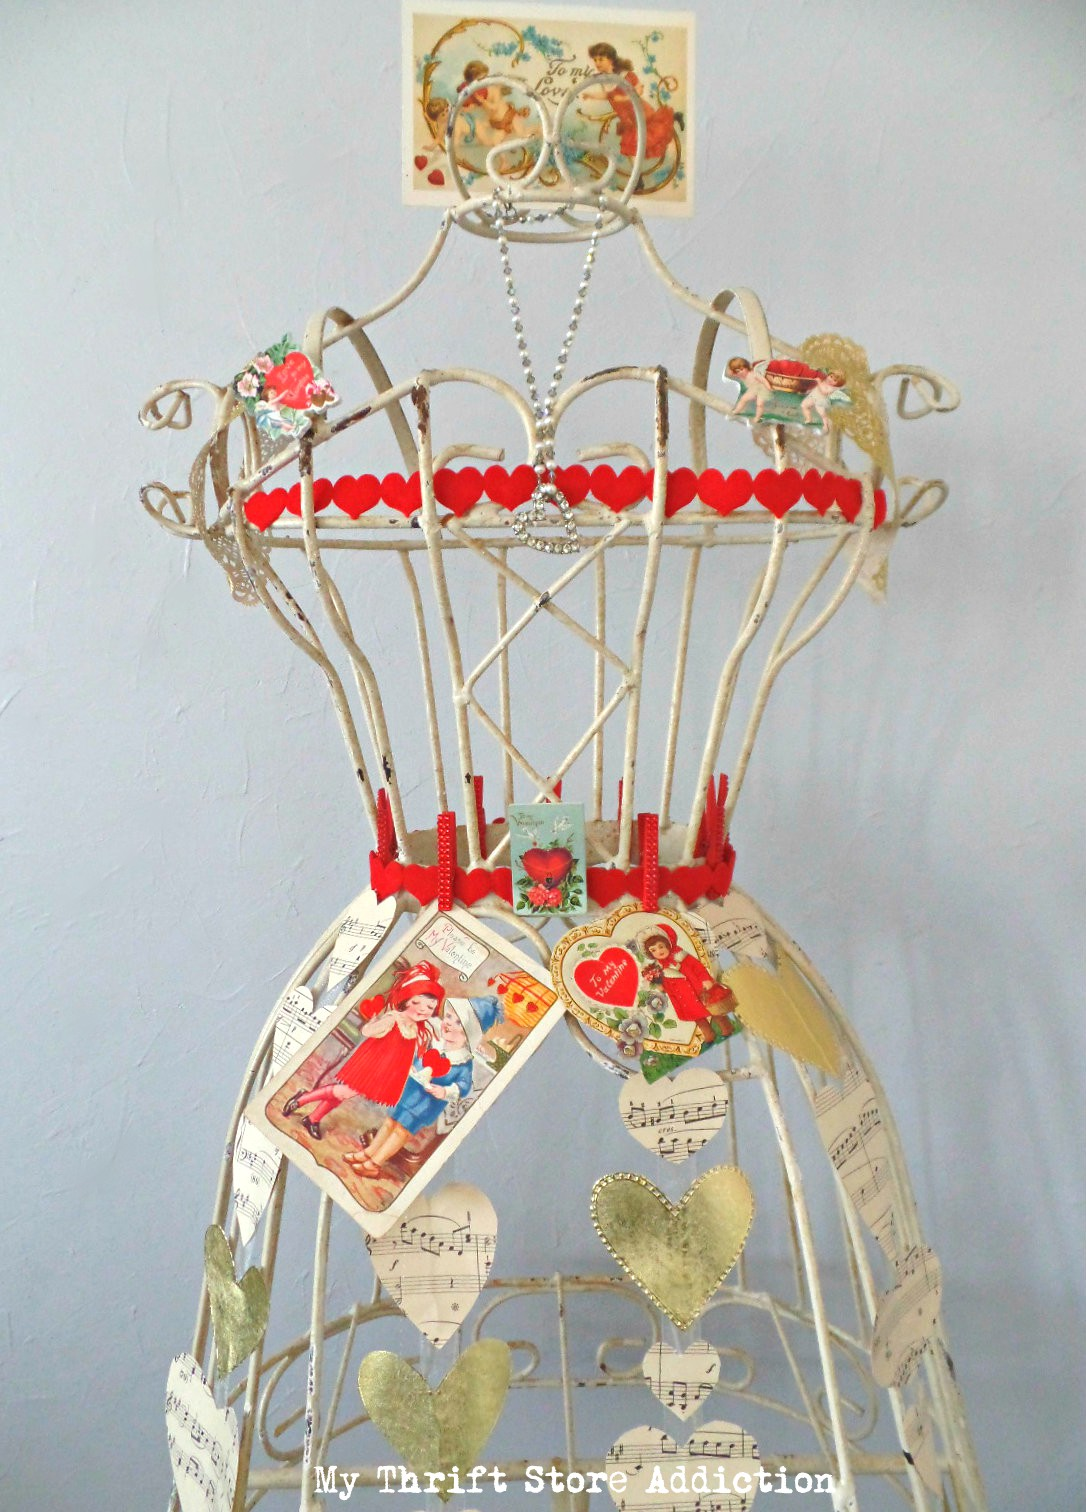 Queen of Hearts Valentine dress form